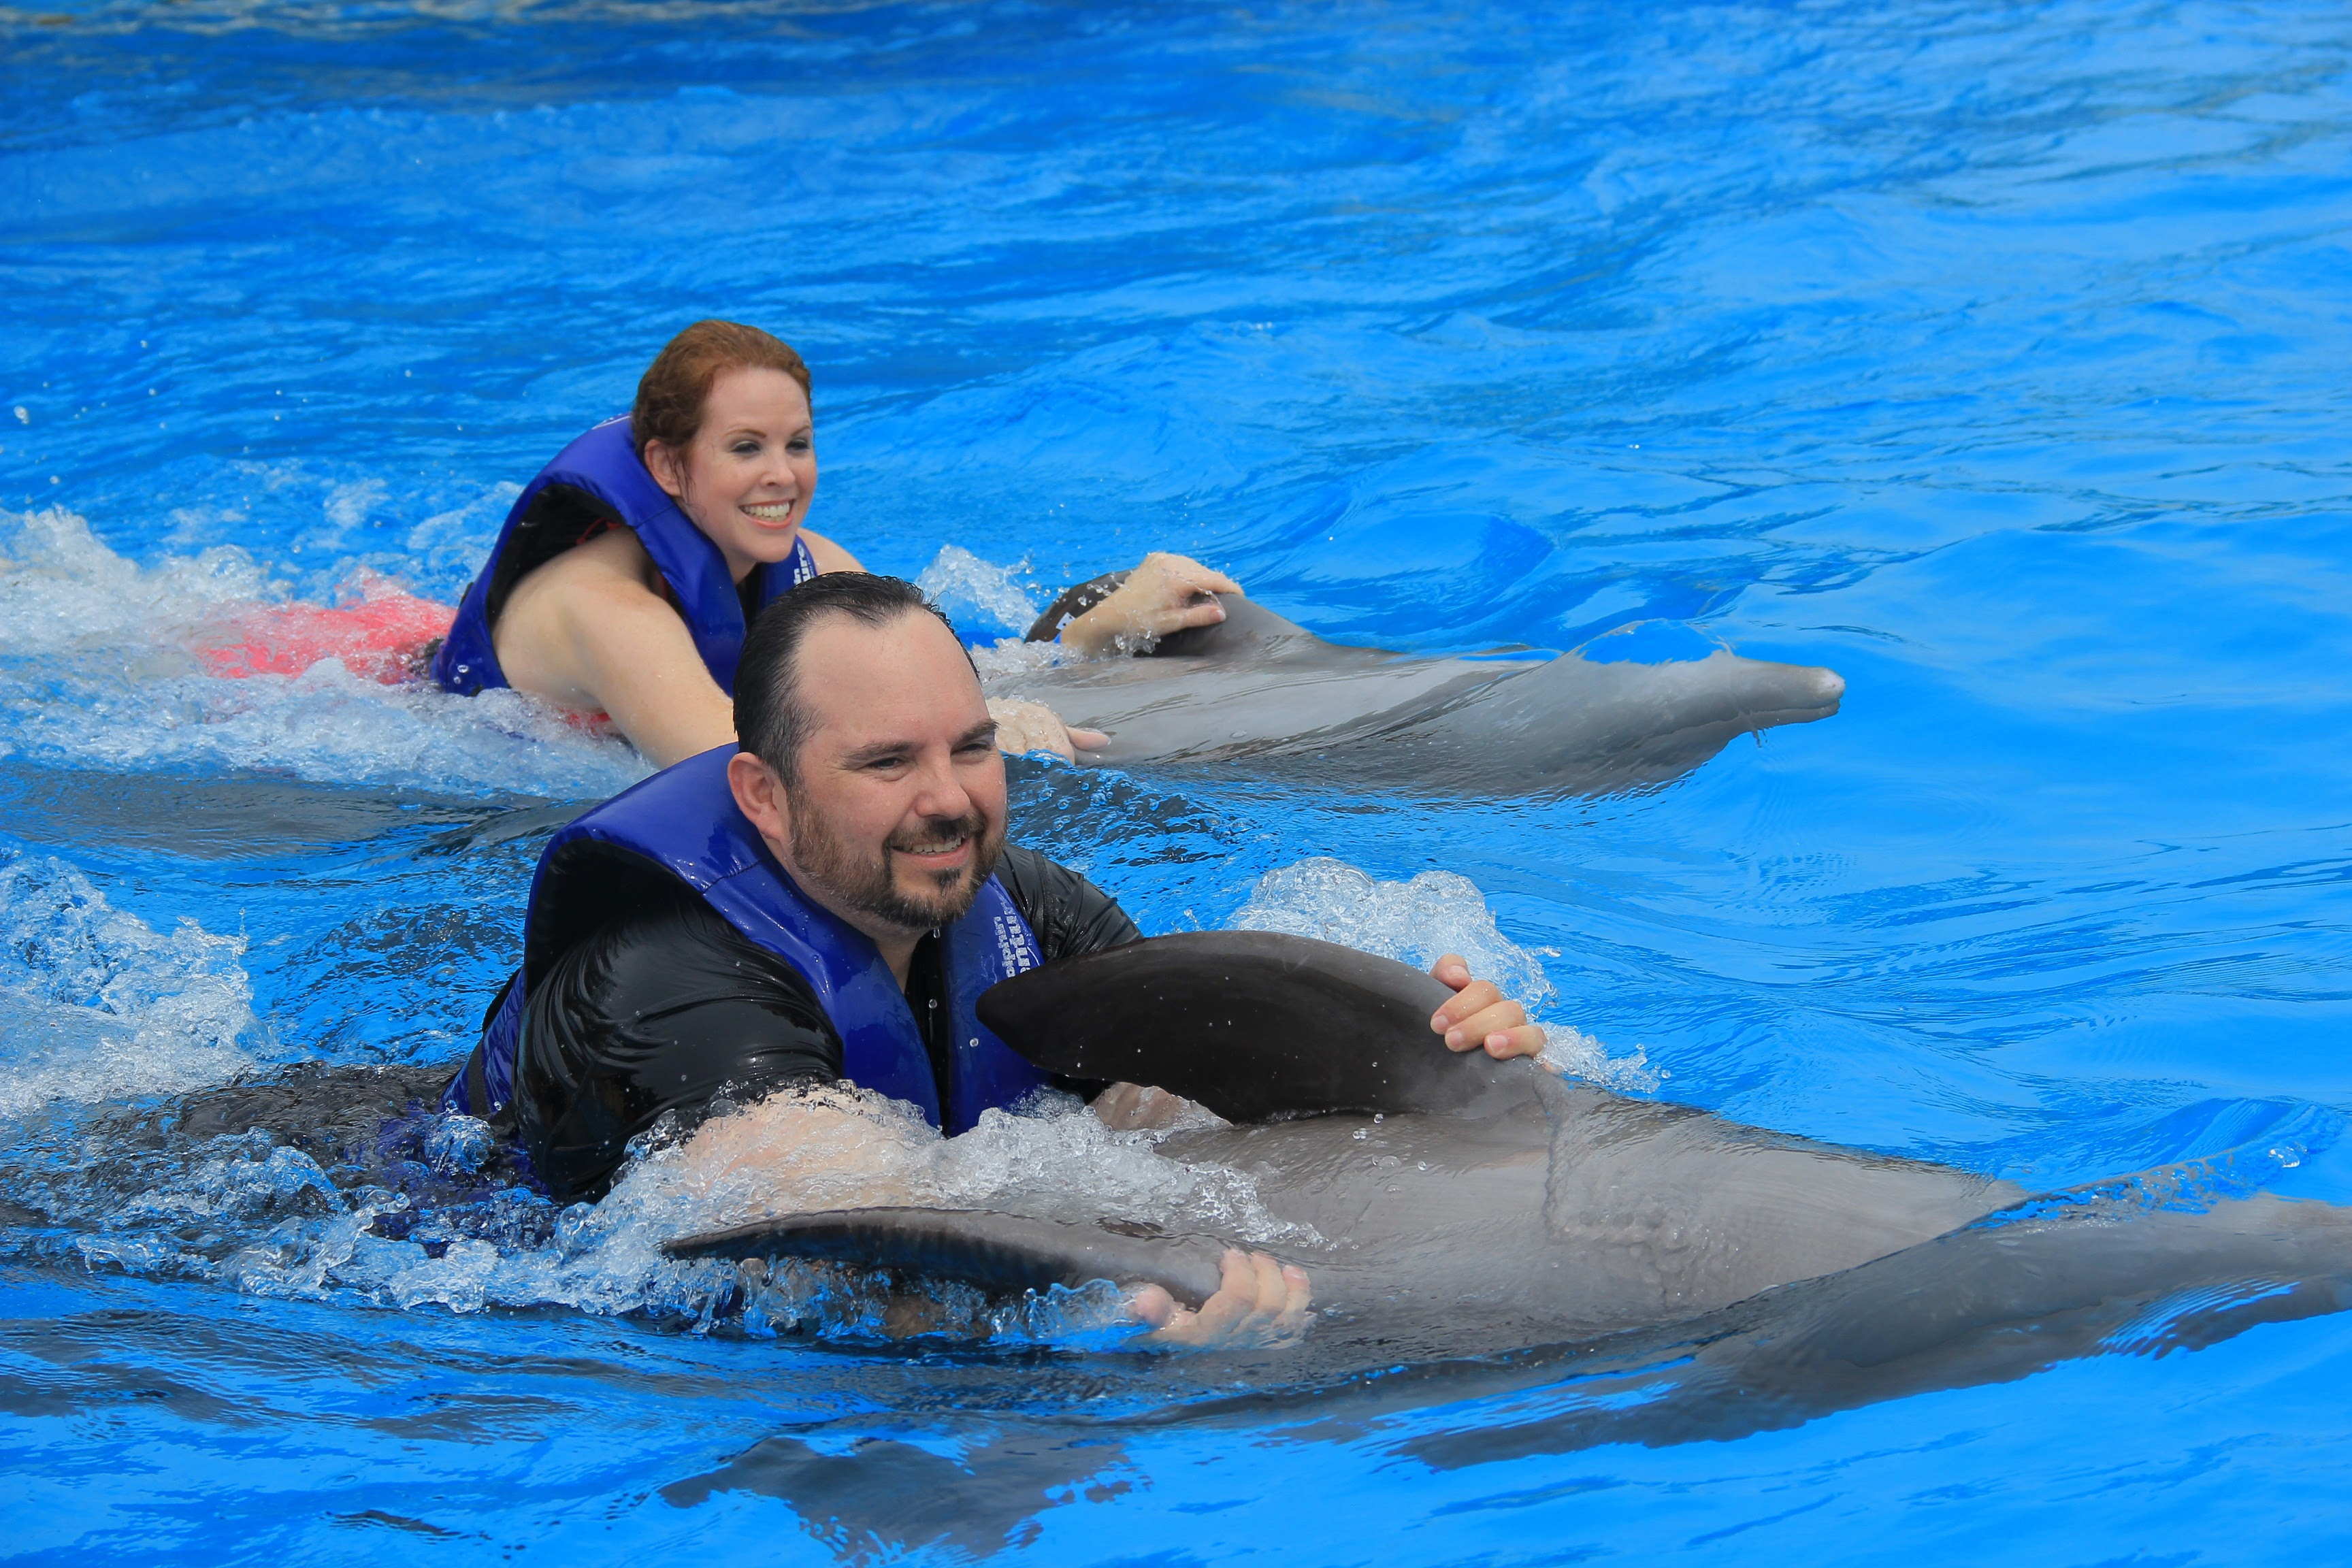 Frank and Shannon Gurnee Dolphins Puerto Vallarta Mexico About Us